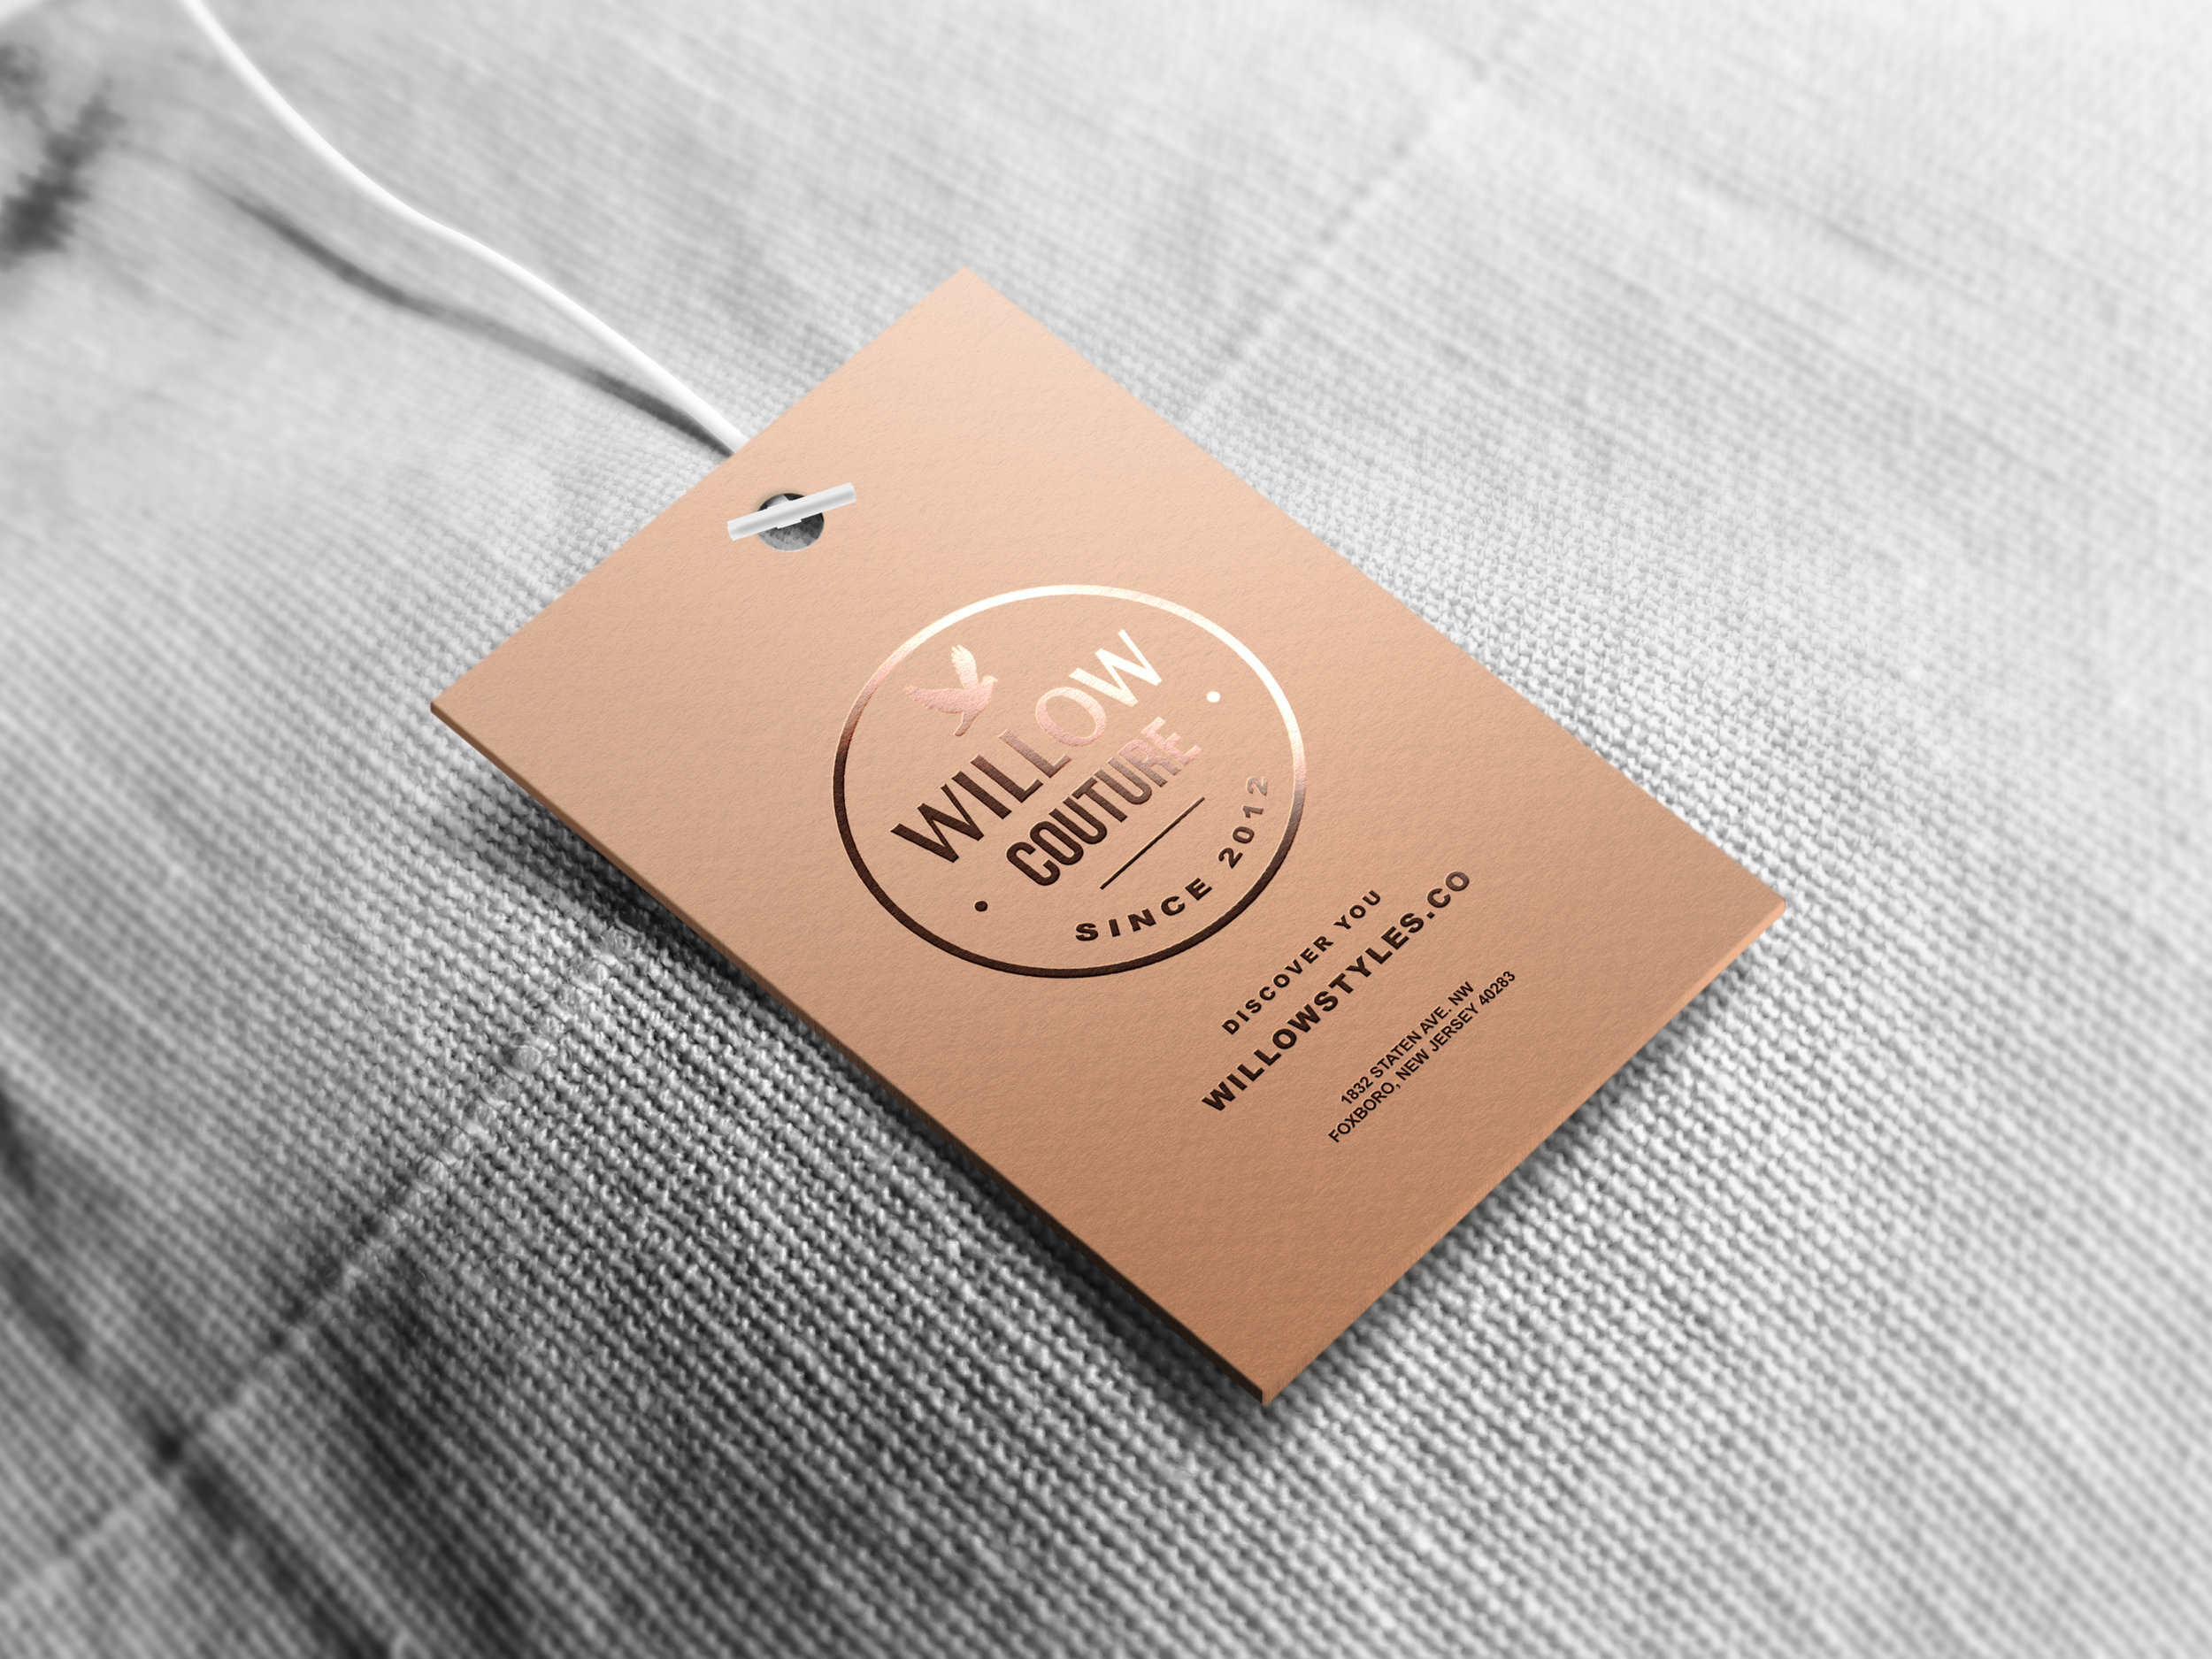 Willow Couture - Clothing Tag Mockup.jpg